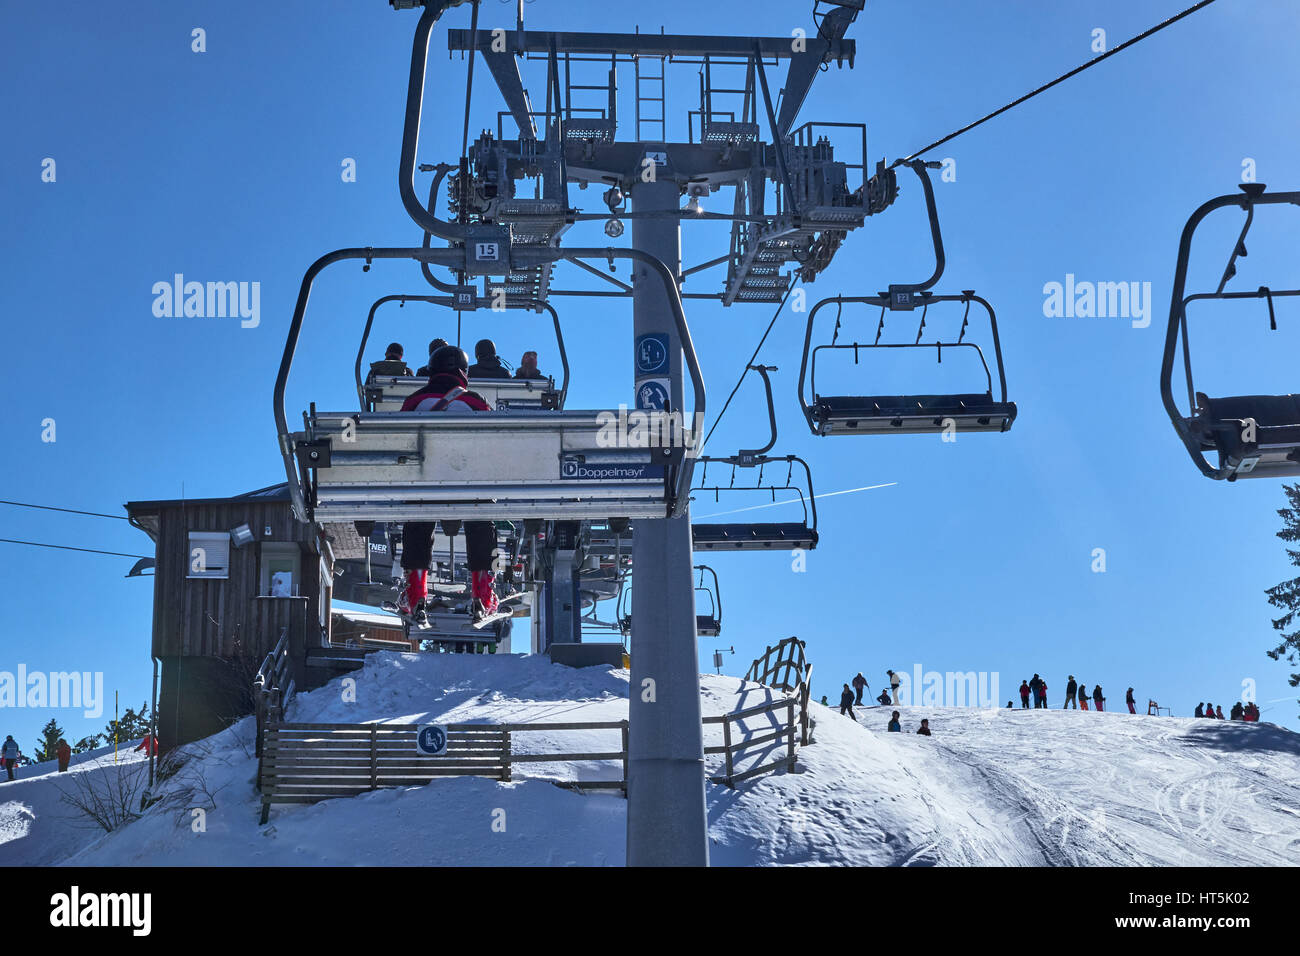 WINTERBERG, GERMANY - FEBRUARY 14, 2017: People sitting up high above the pistes in a chairlift at Ski Carousel Stock Photo